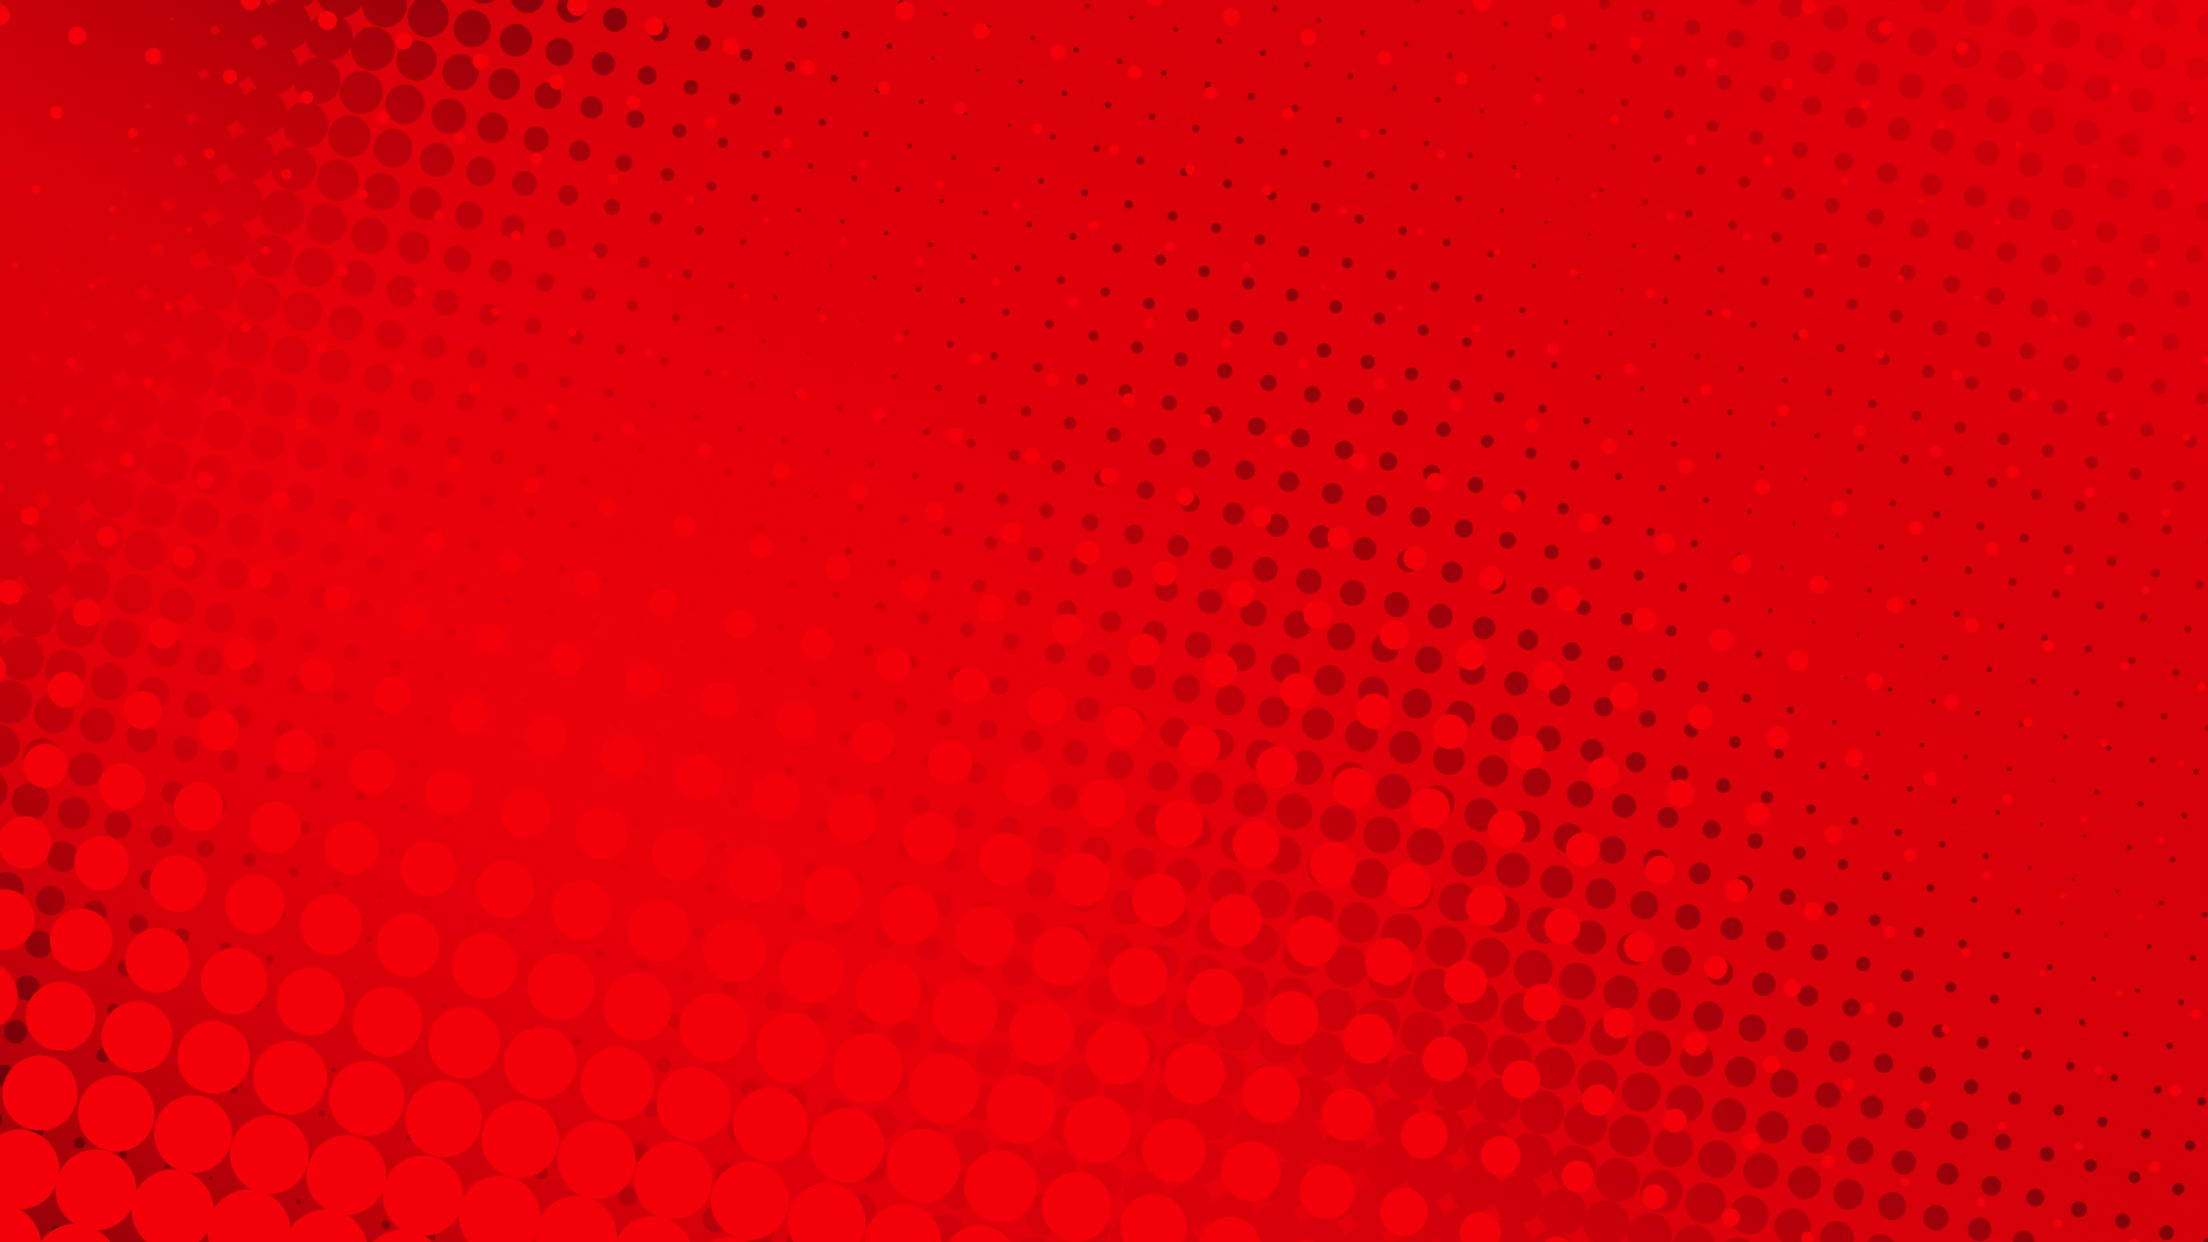 Red halftone background | HD Wallpapers , HD Backgrounds ...